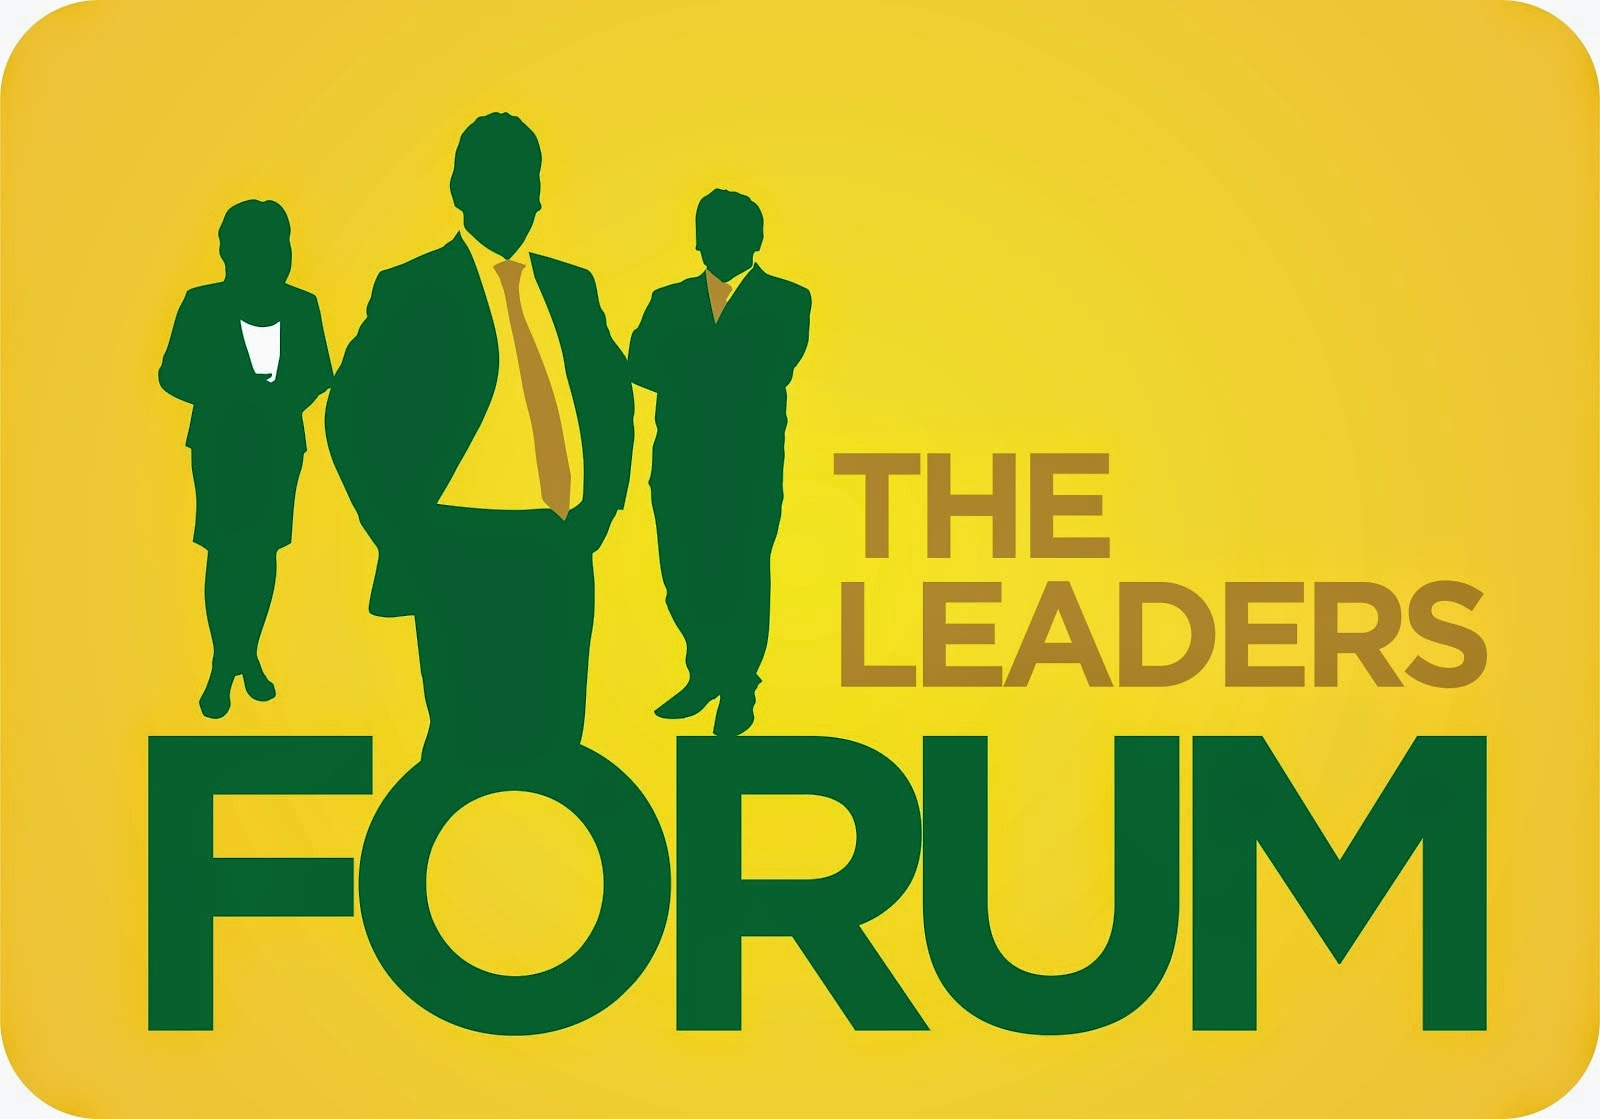 Attend Leaders Forum every Monday